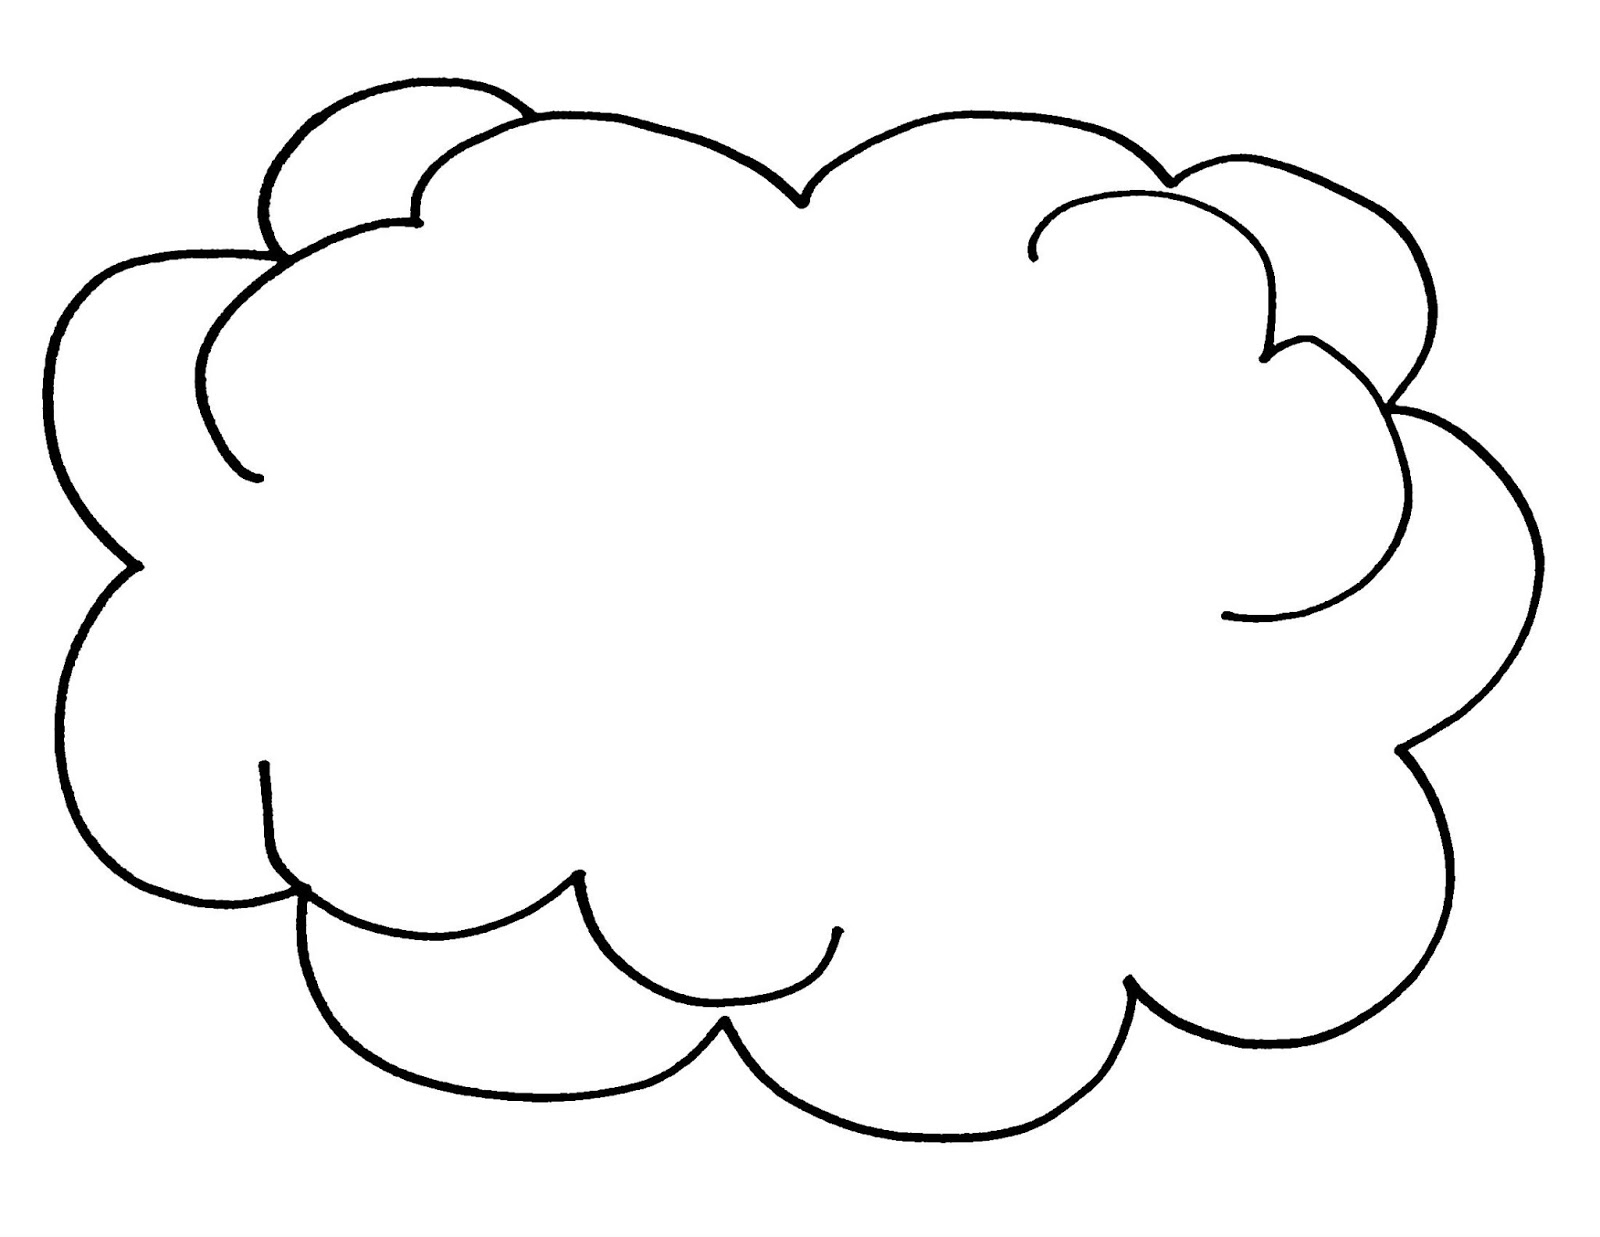 cloudbabies coloring pages for kids - photo#17